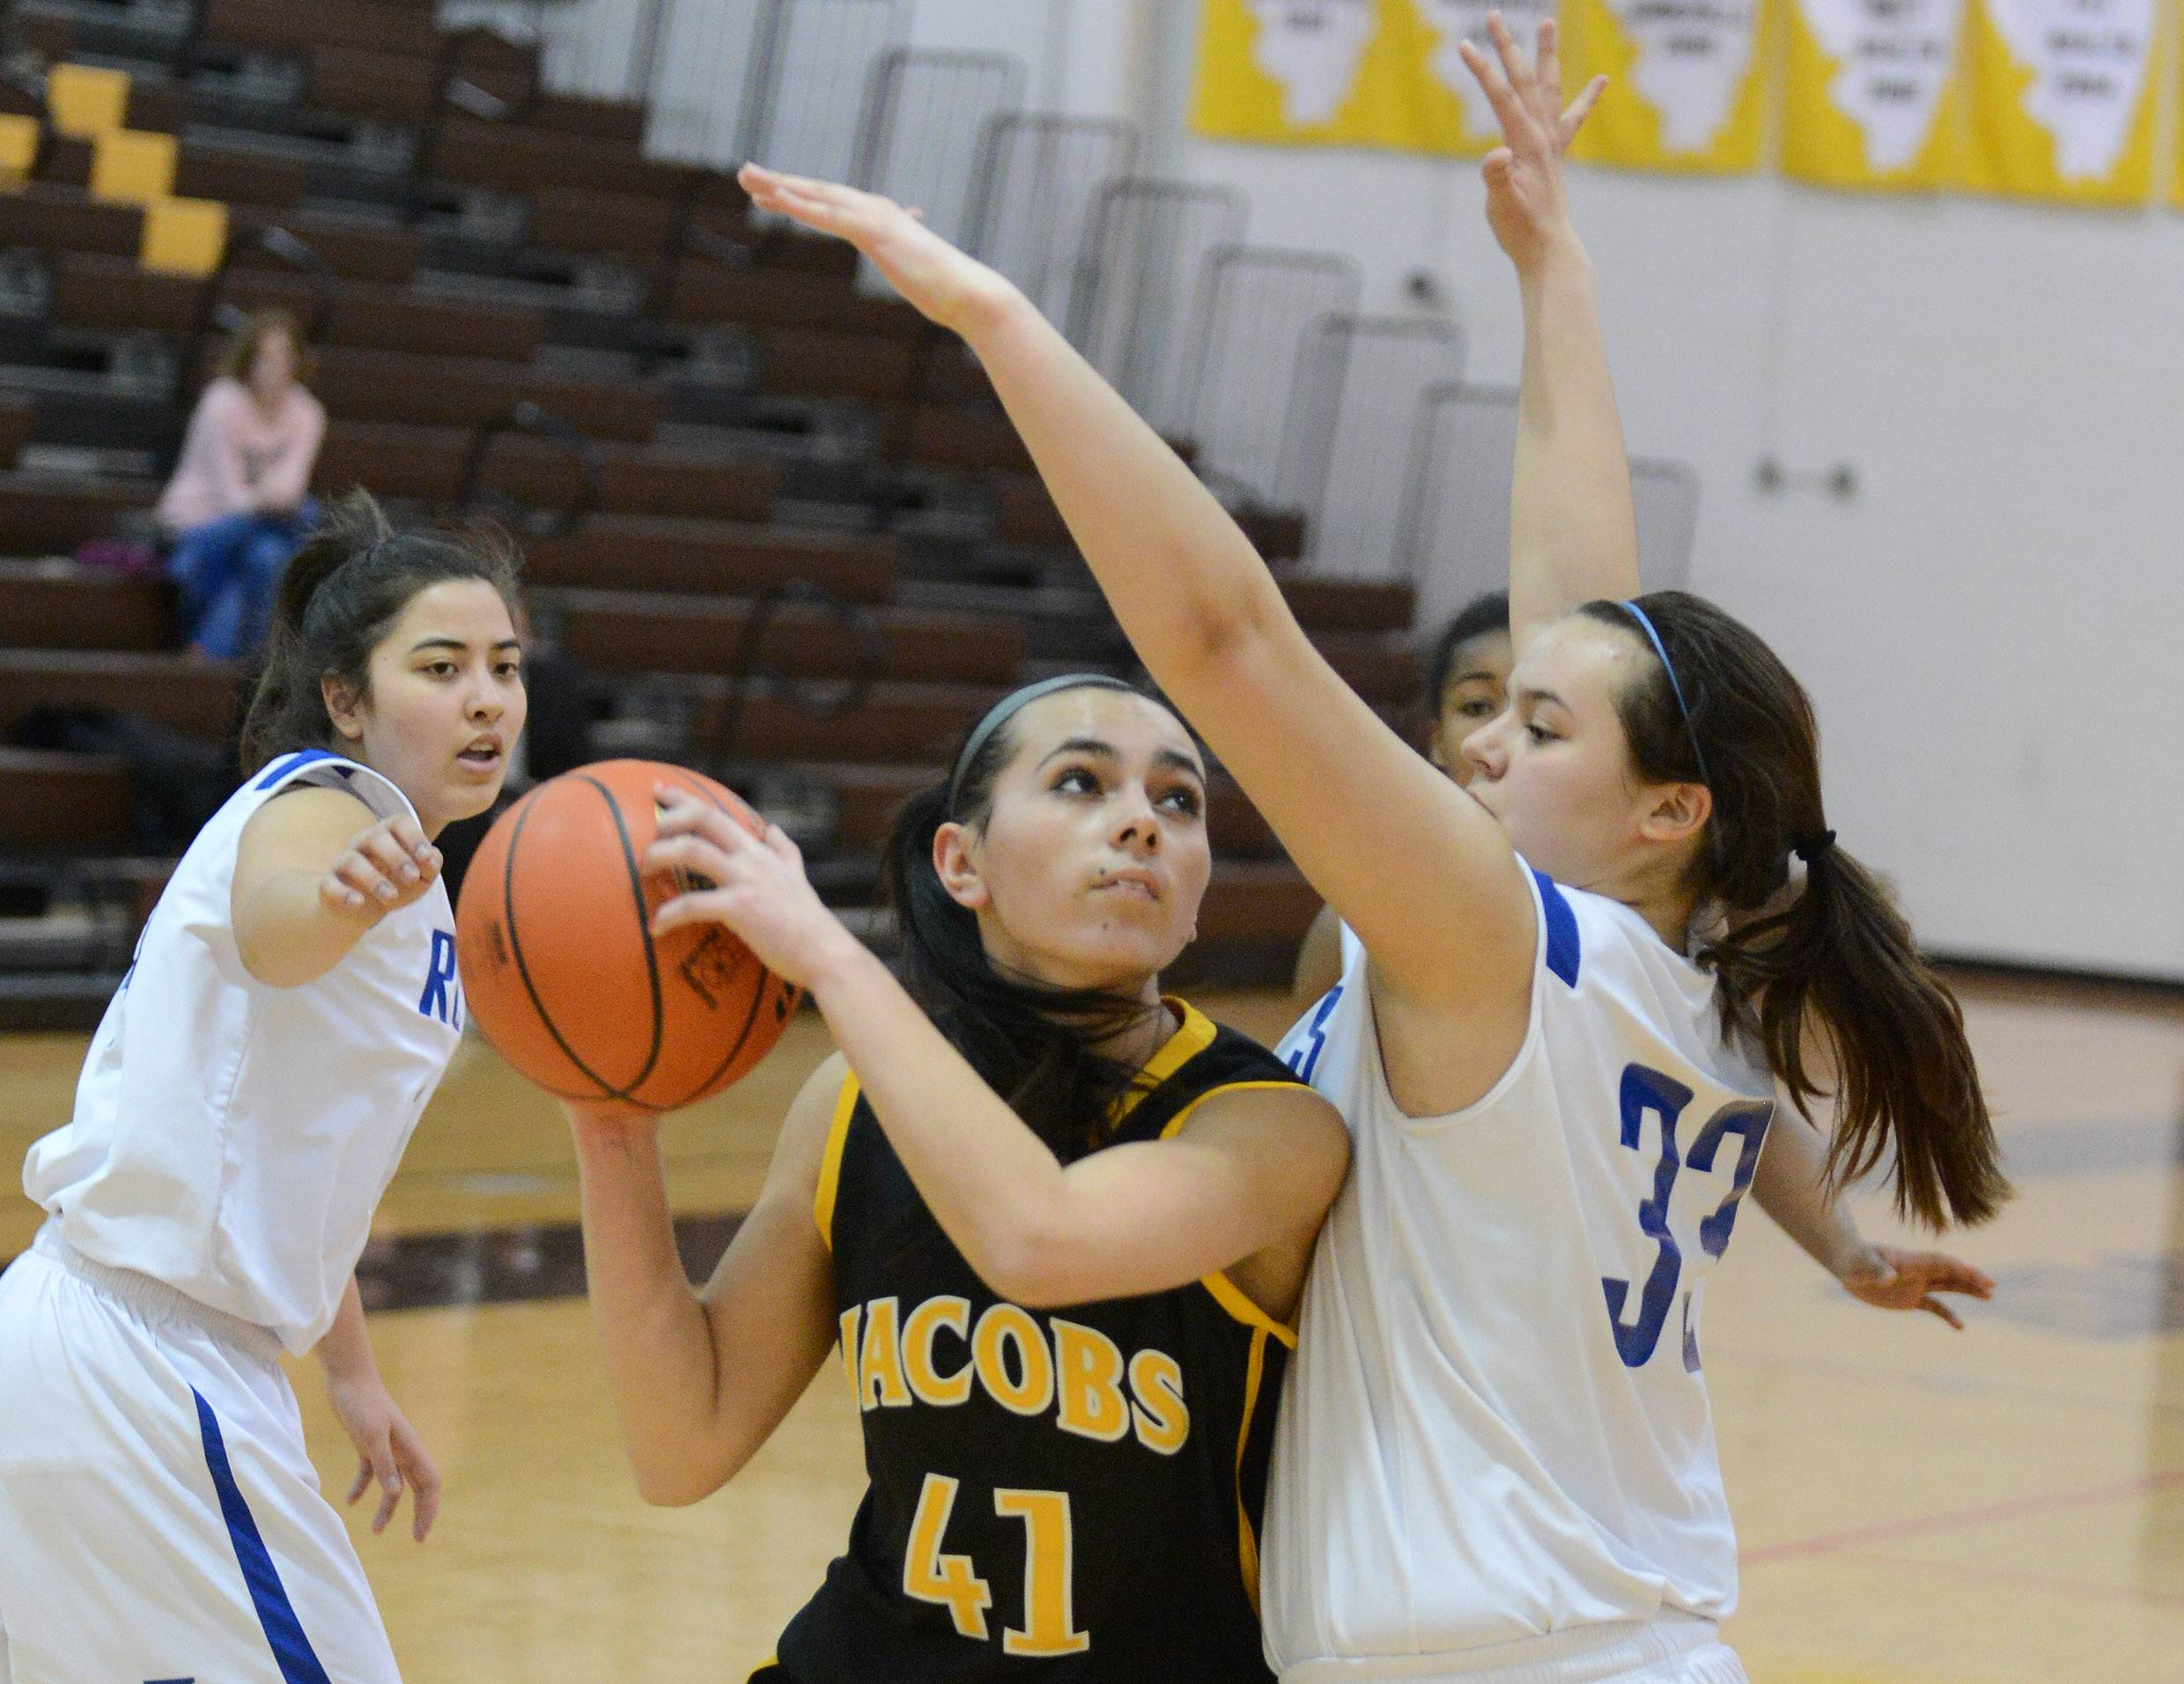 Images: Larkin vs. Jacobs girls basketball